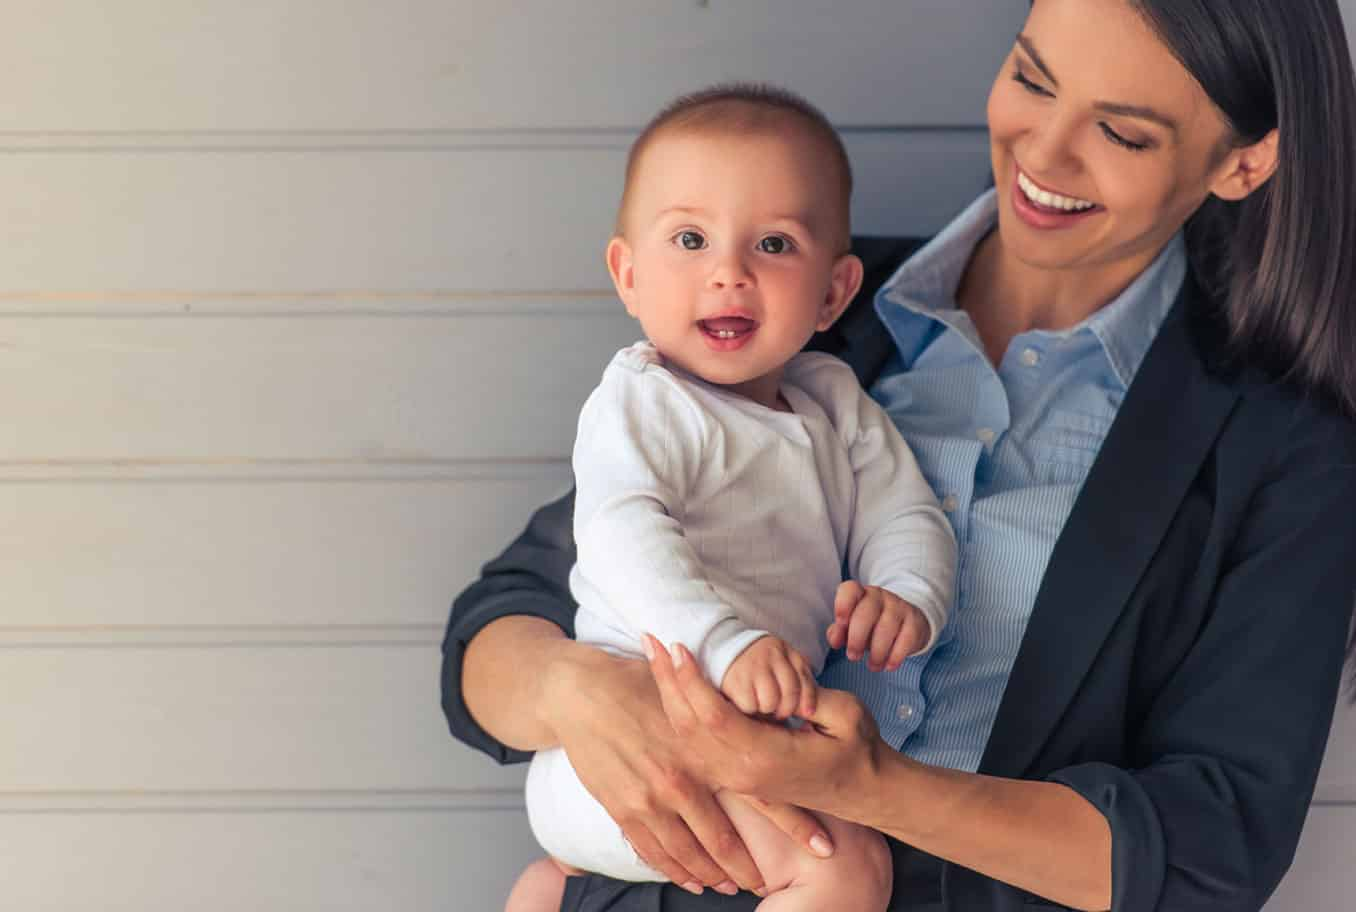 Family lawyer holding a baby during a divorce proceeding